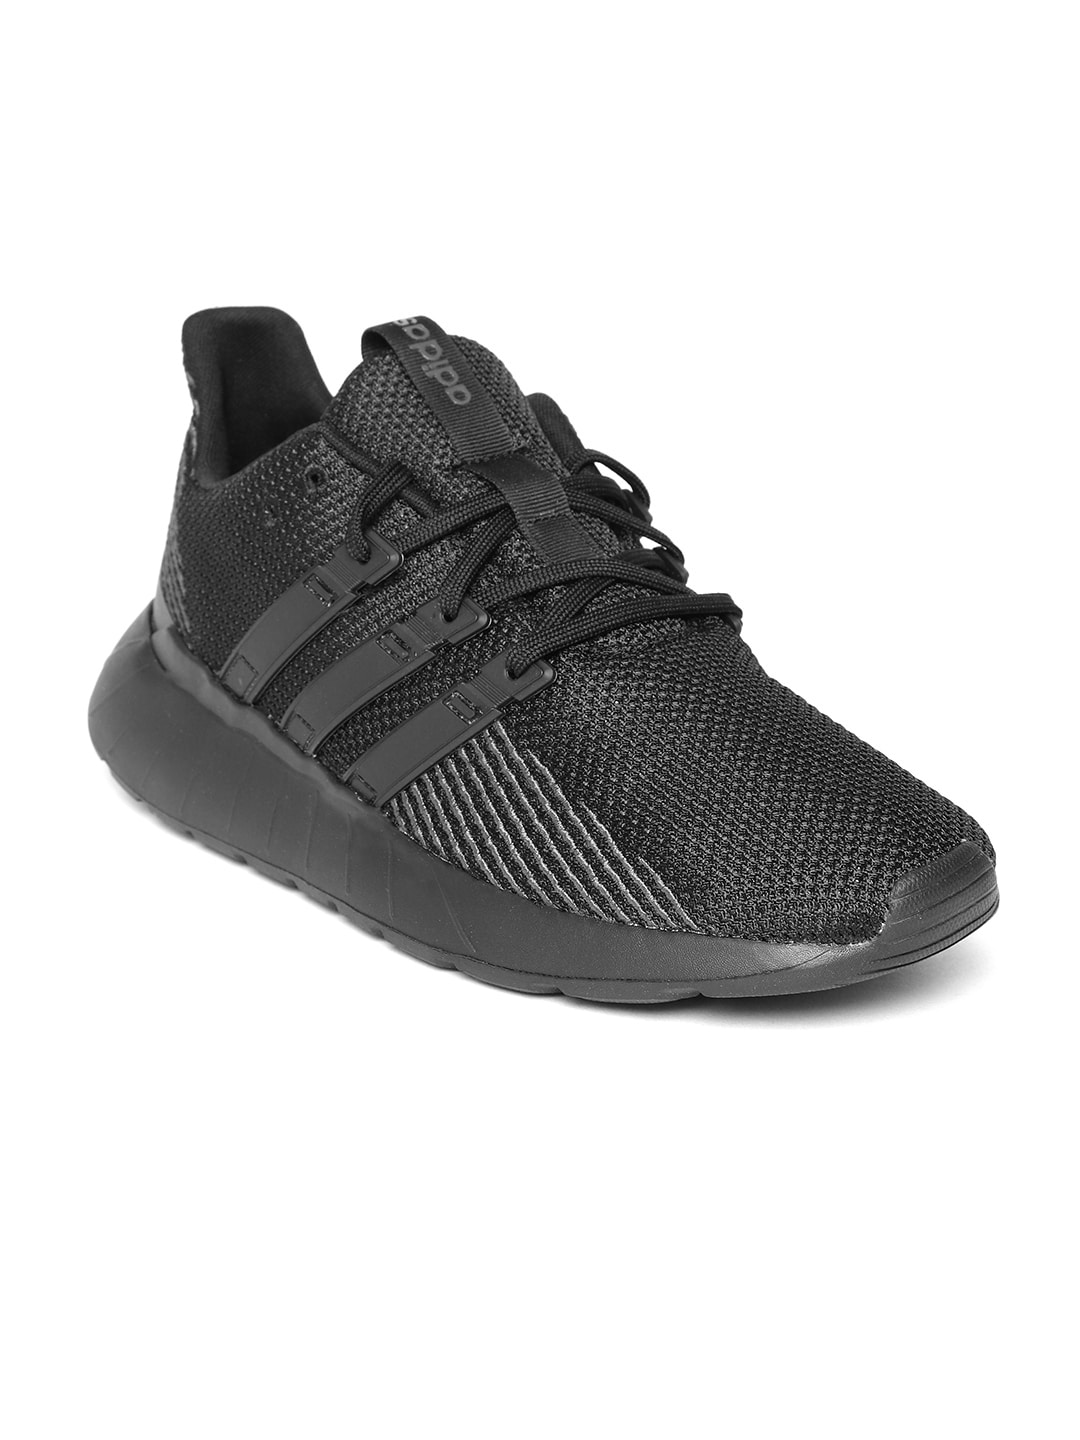 a675b470f Nike Adidas Puma Sneakers - Buy Nike Adidas Puma Sneakers online in India